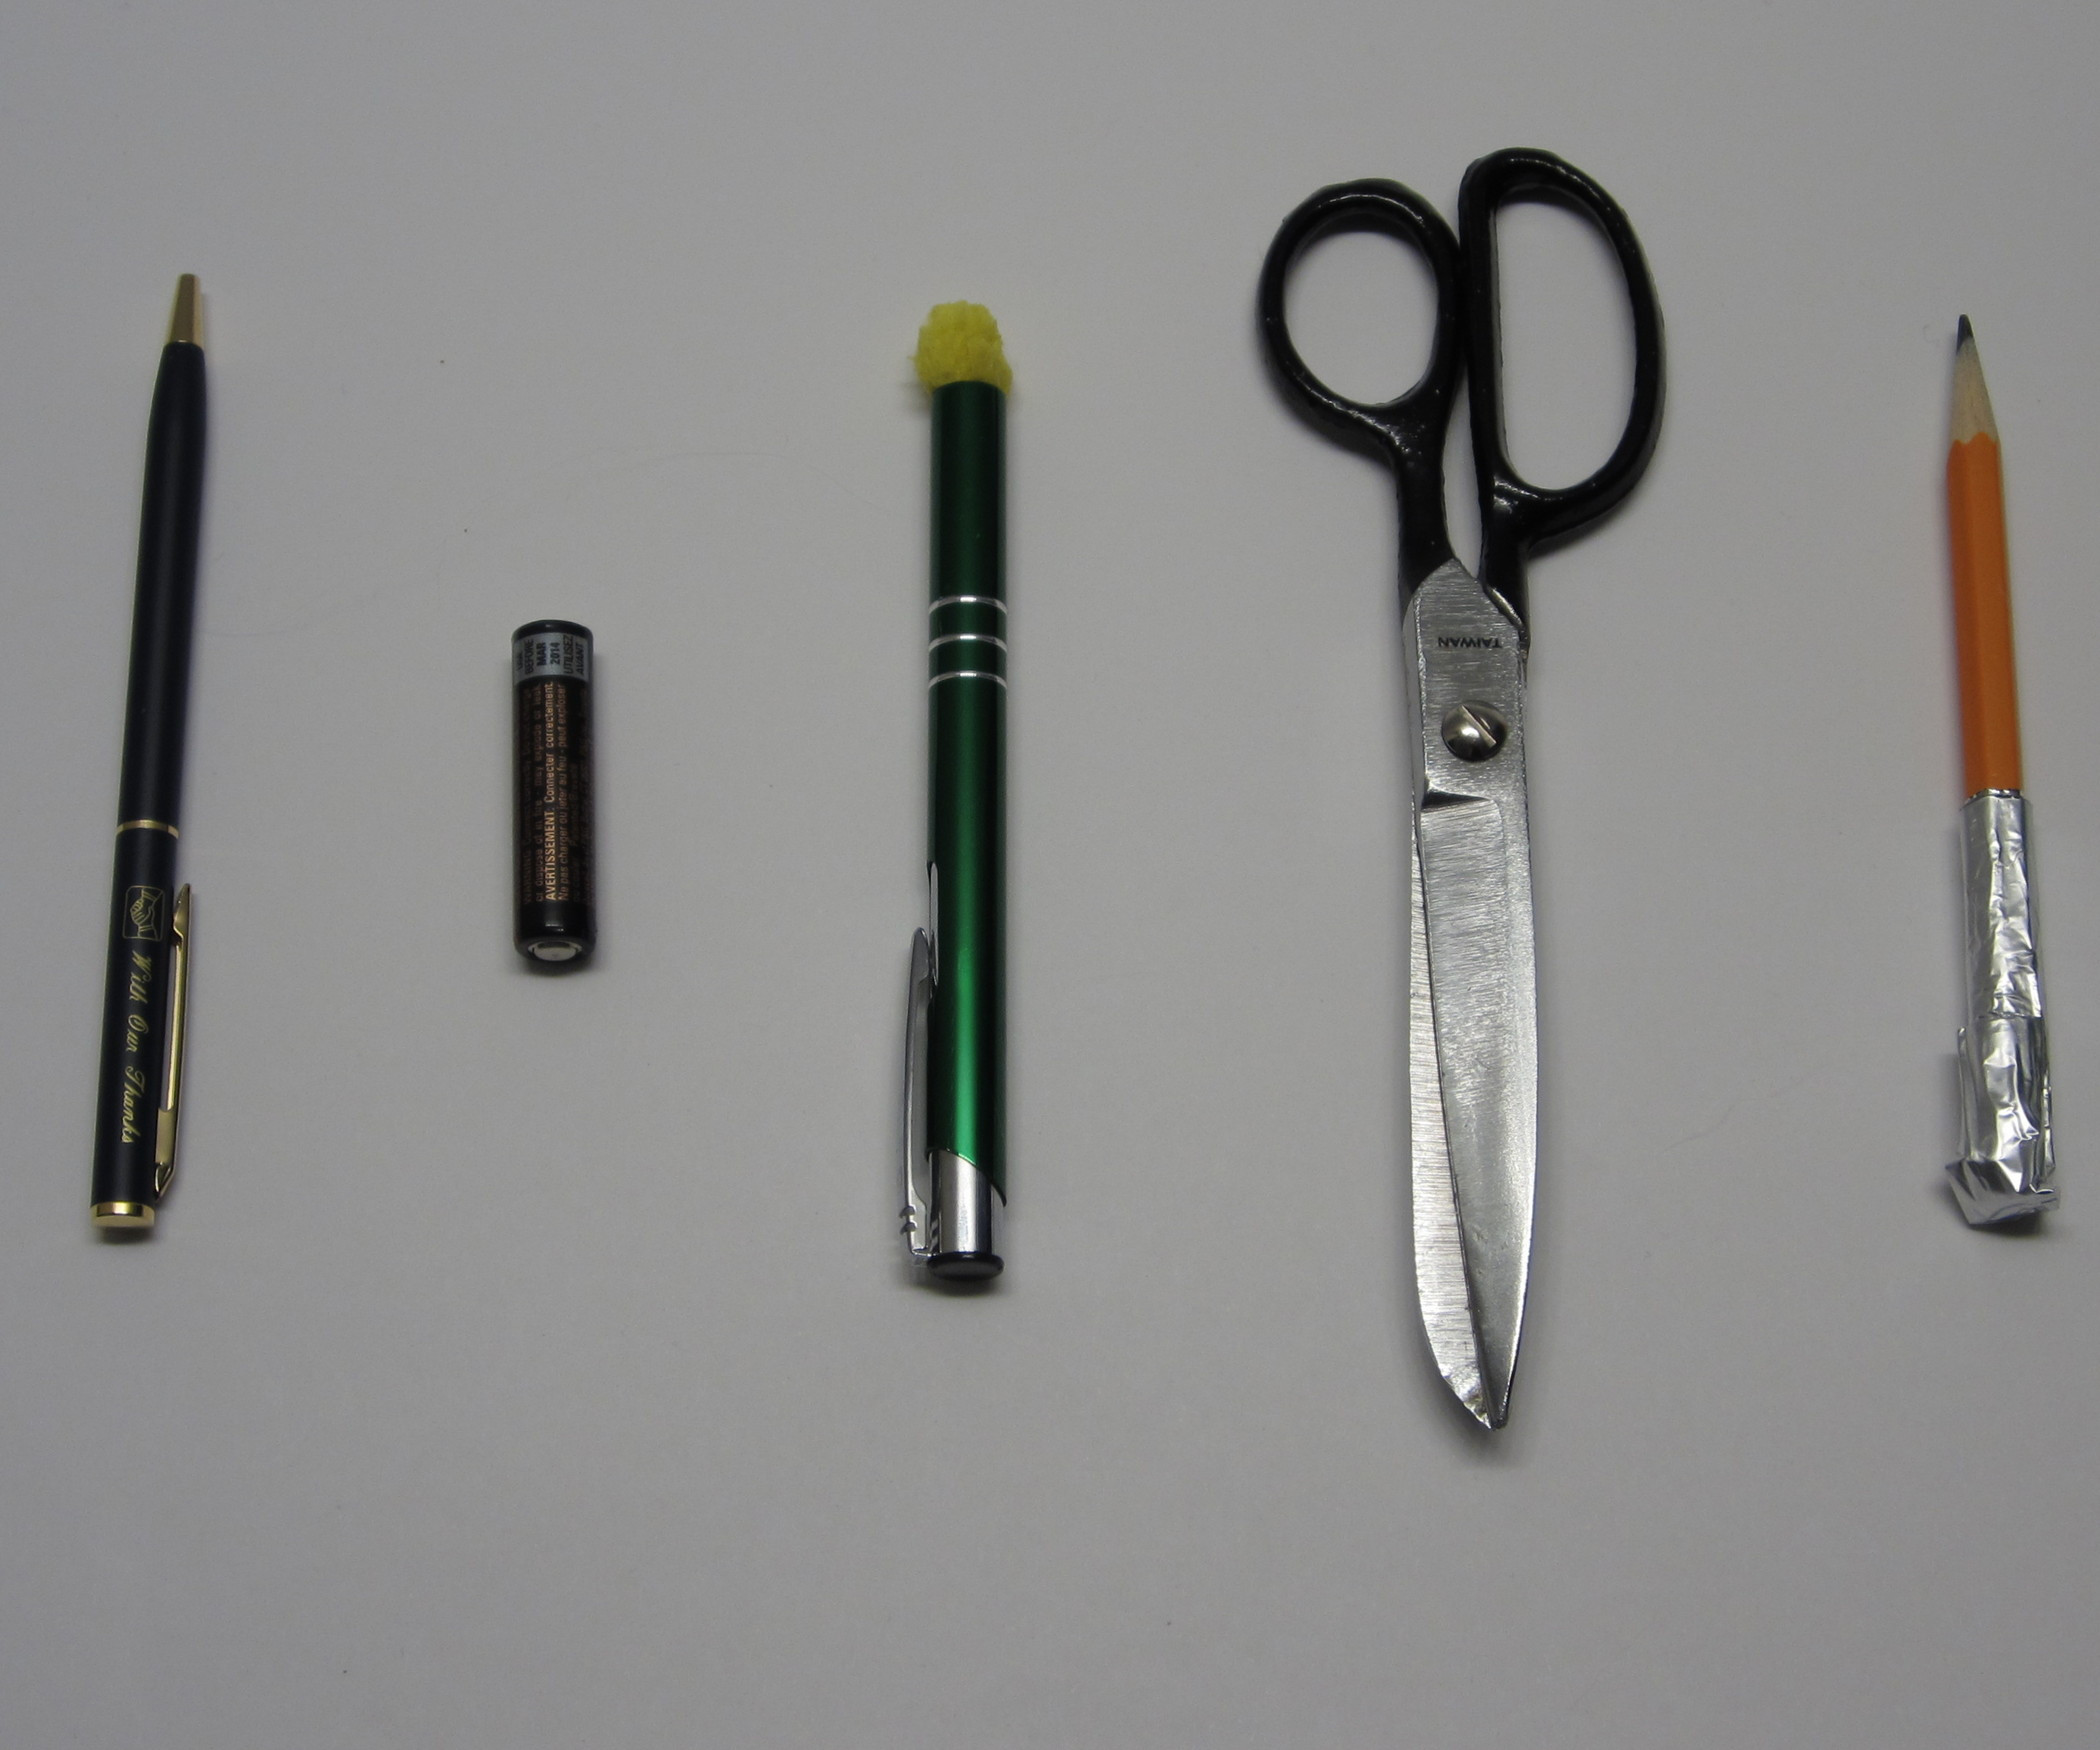 Best ideas about DIY Stylus Pen . Save or Pin DIY Capacitive Stylus Now.